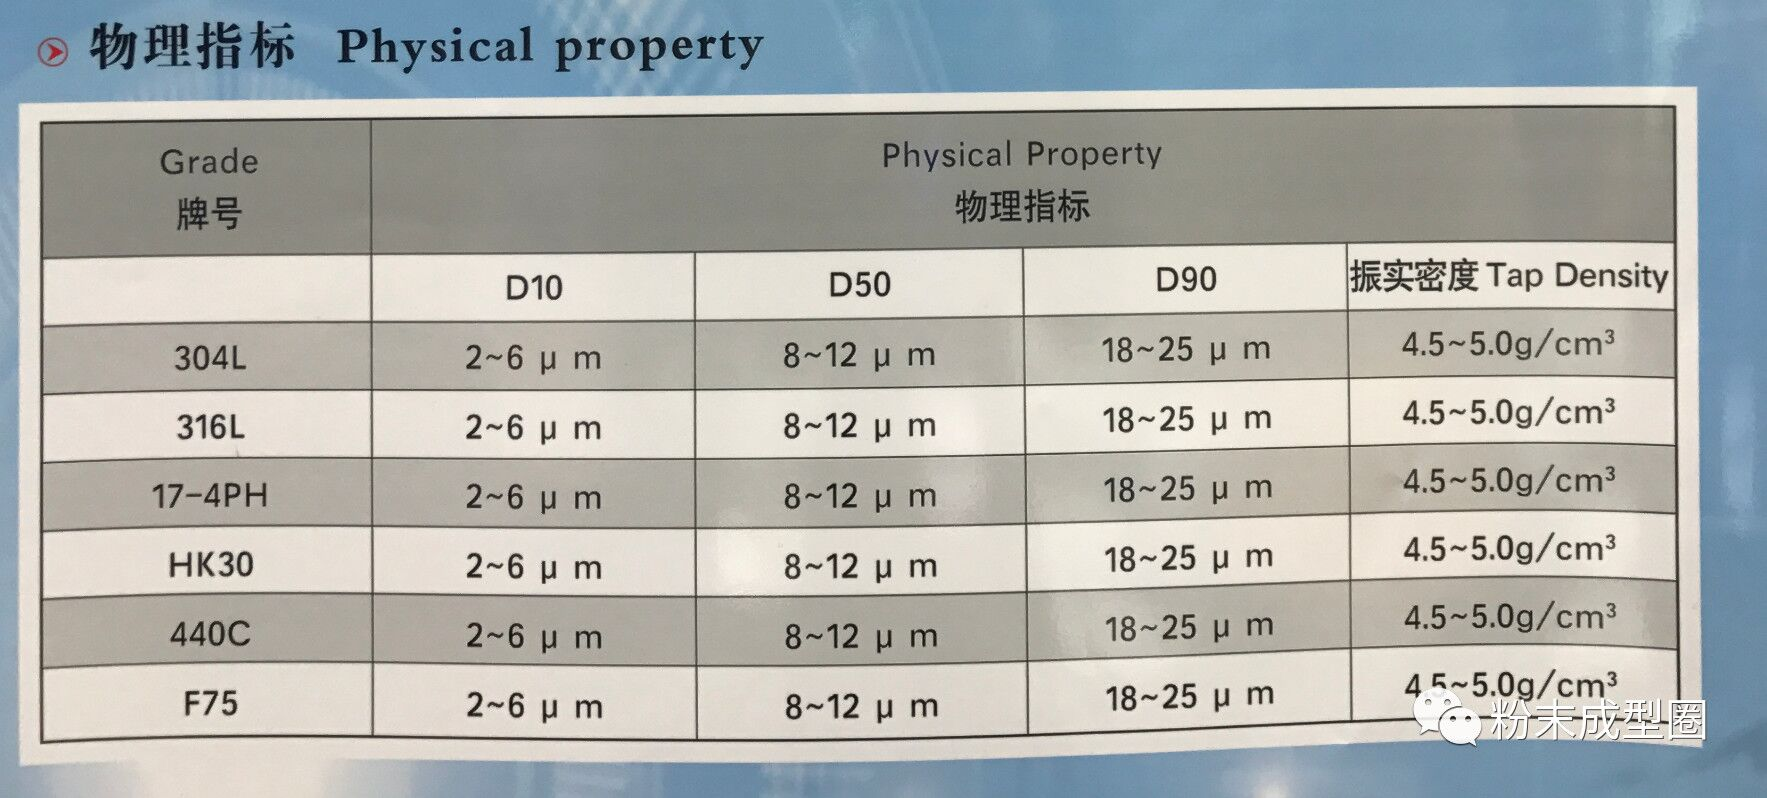 Physical property.jpg